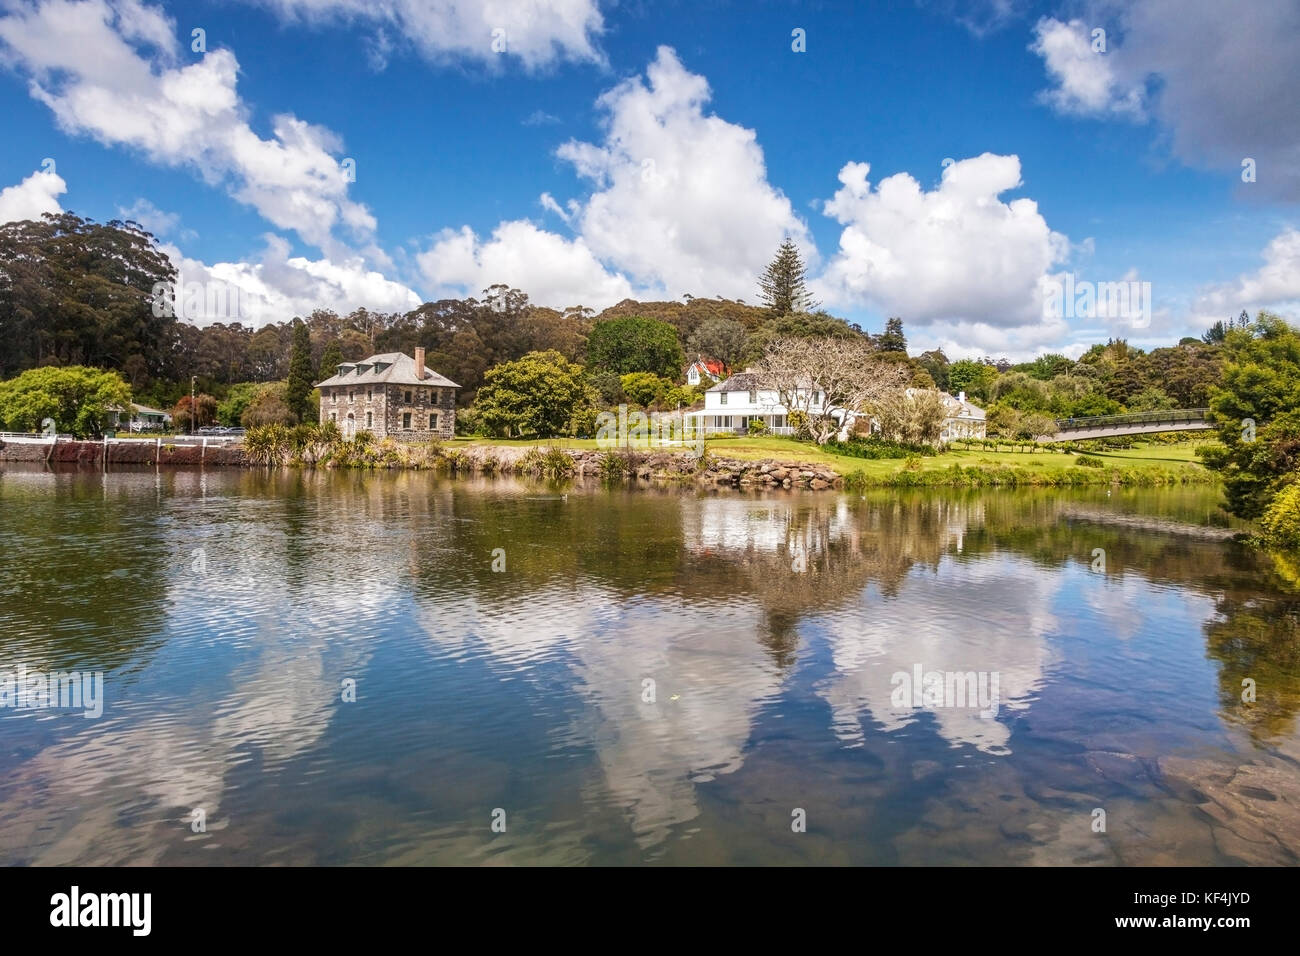 New Zealand's oldest stone building, the Stone Store at Kerikeri, Bay of Islands. Kerikeri in Northland is one of Stock Photo